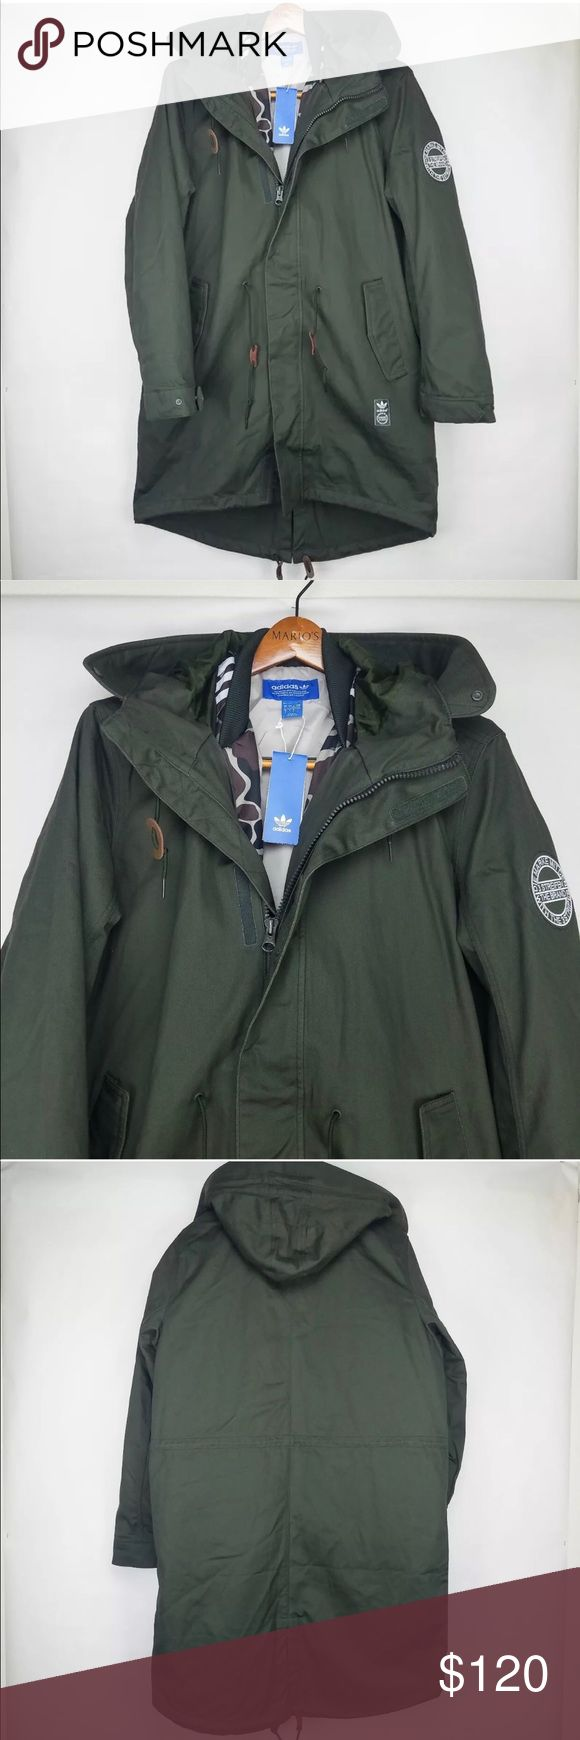 ADIDAS ORIGINALS 2 IN 1 PARKA / Olive Green L Brand New ADIDAS Originals 2 in 1 Utility Fishtail PARKA Jacket / Size L / Olive Green Includes Military Print Insulated Inner Bomber Coat adidas Jackets & Coats